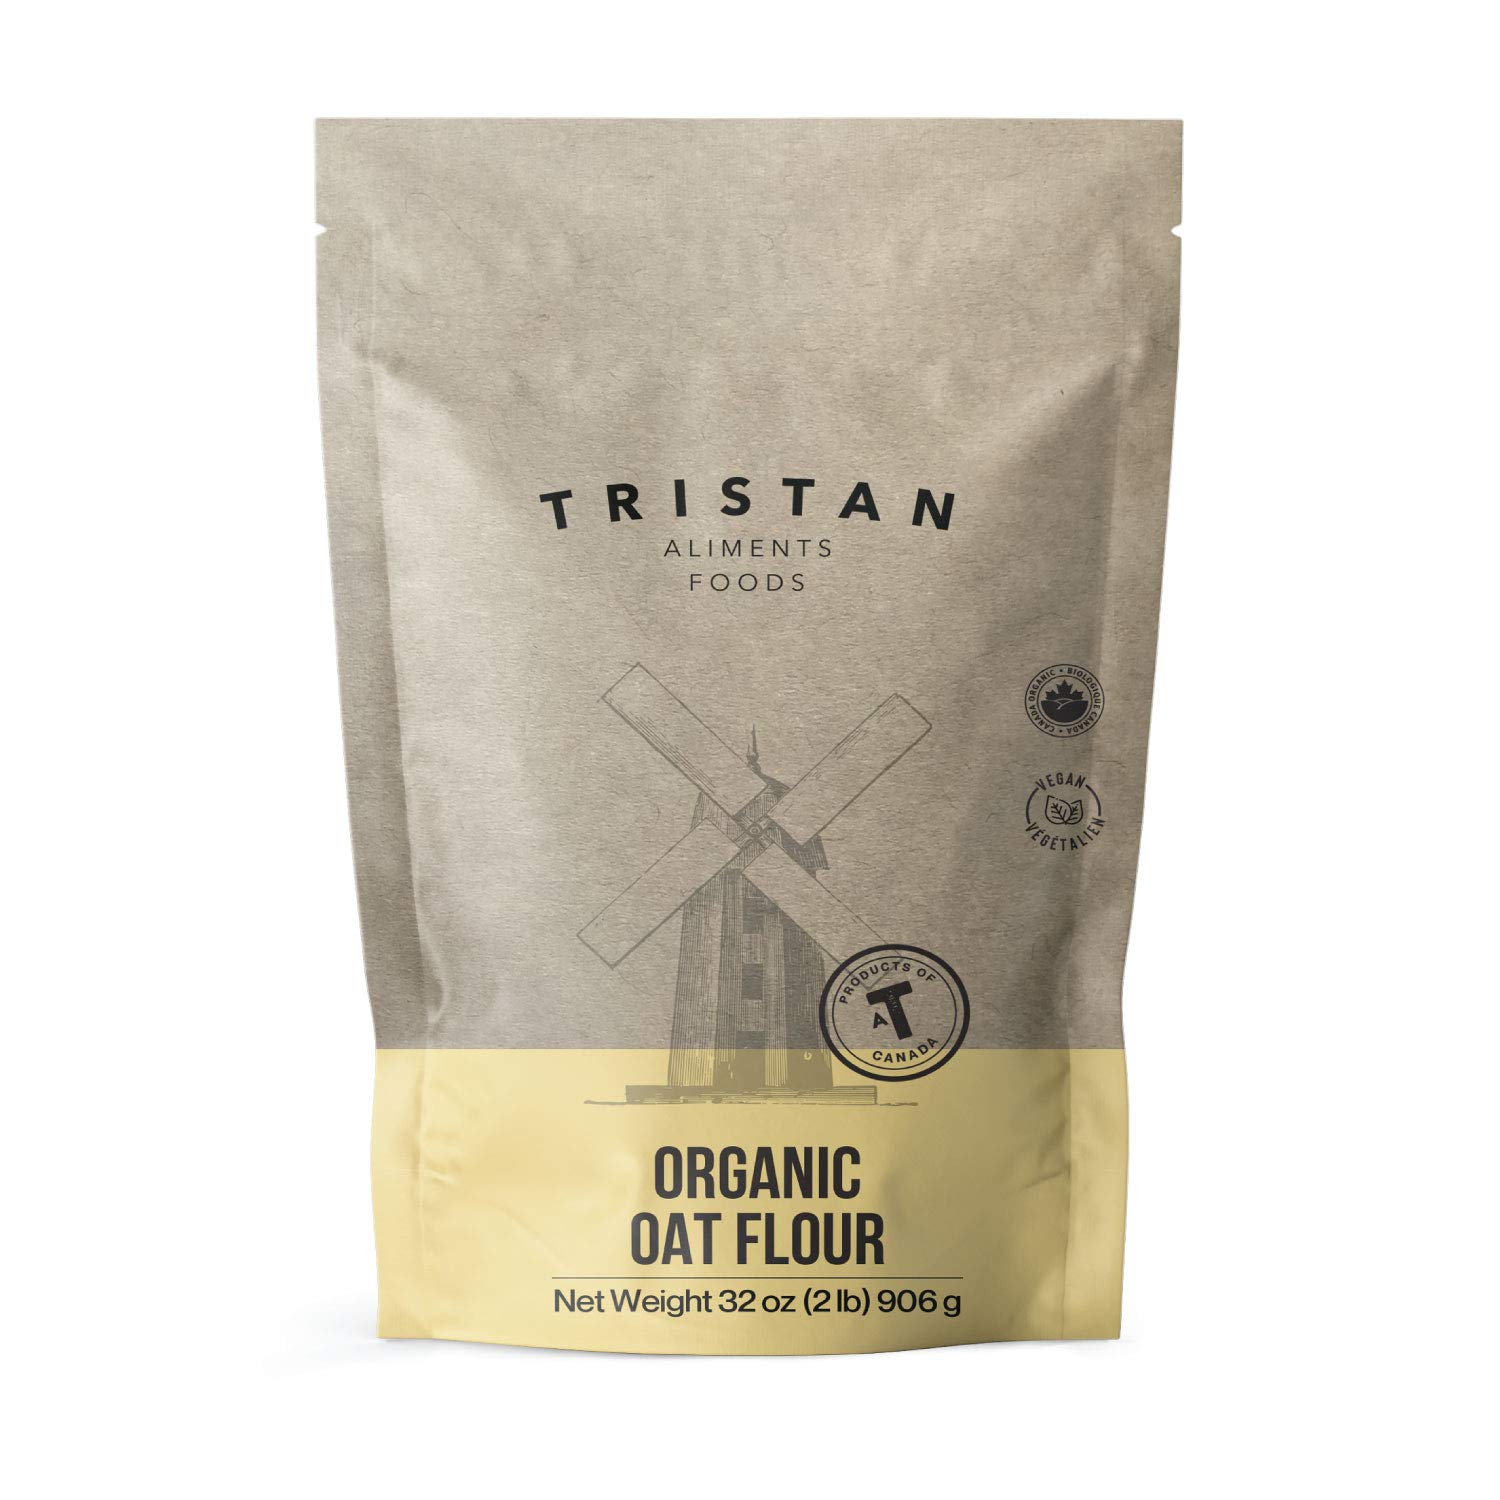 Tristan Foods Organic Oat Flour (2 lbs.) Pure and Vegan Friendly | Finely Ground Cooking and Baking Use | Cultivated in Canada